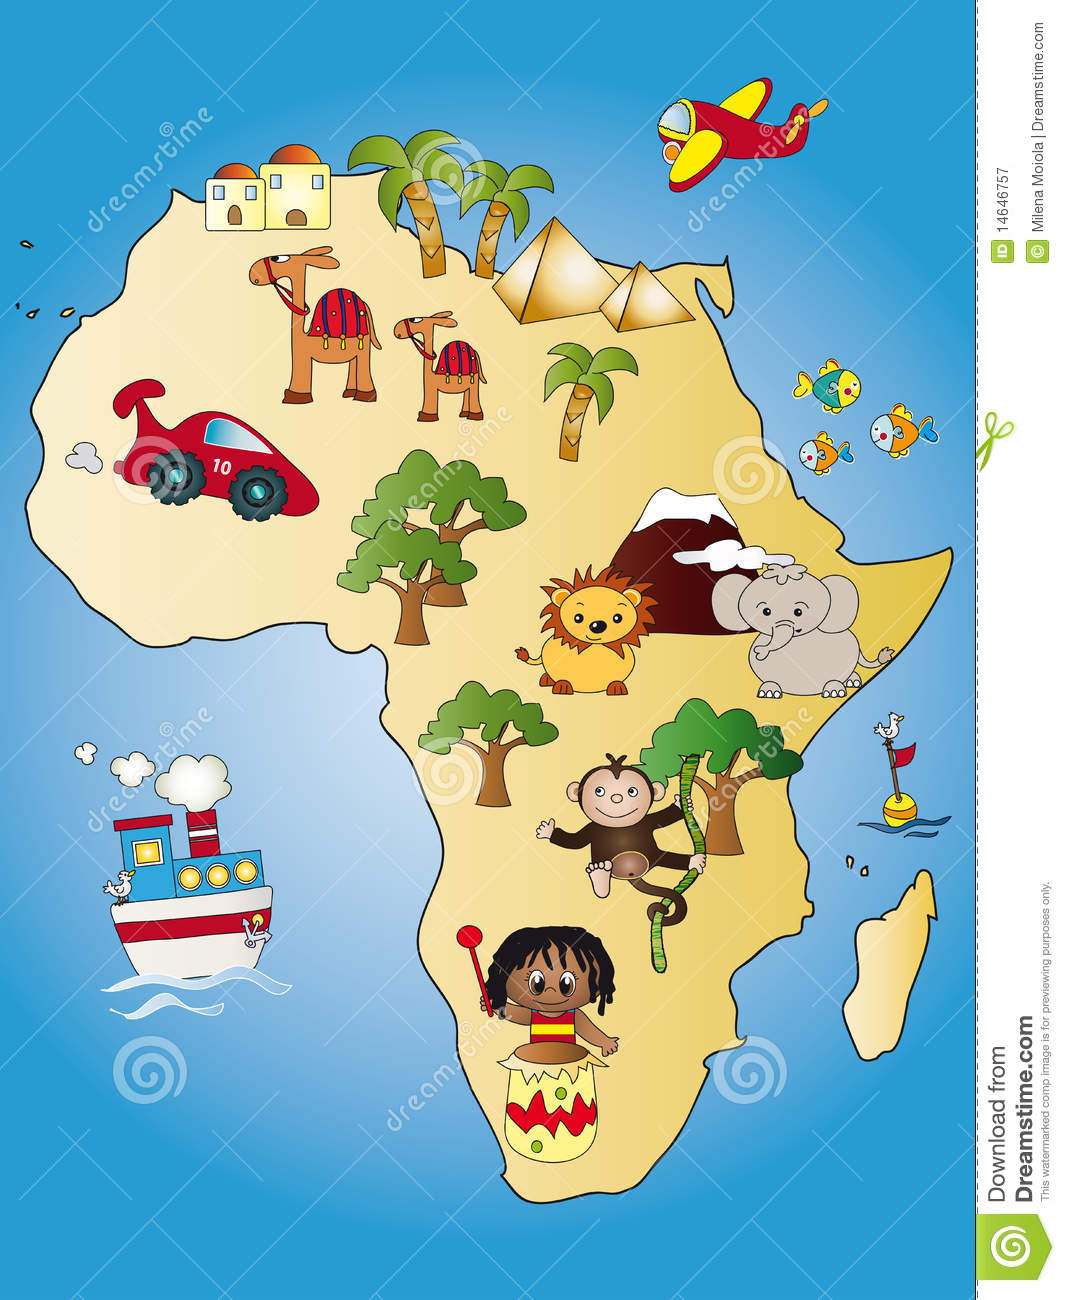 http://thumbs.dreamstime.com/z/carte-de-l-afrique-14646757.jpg